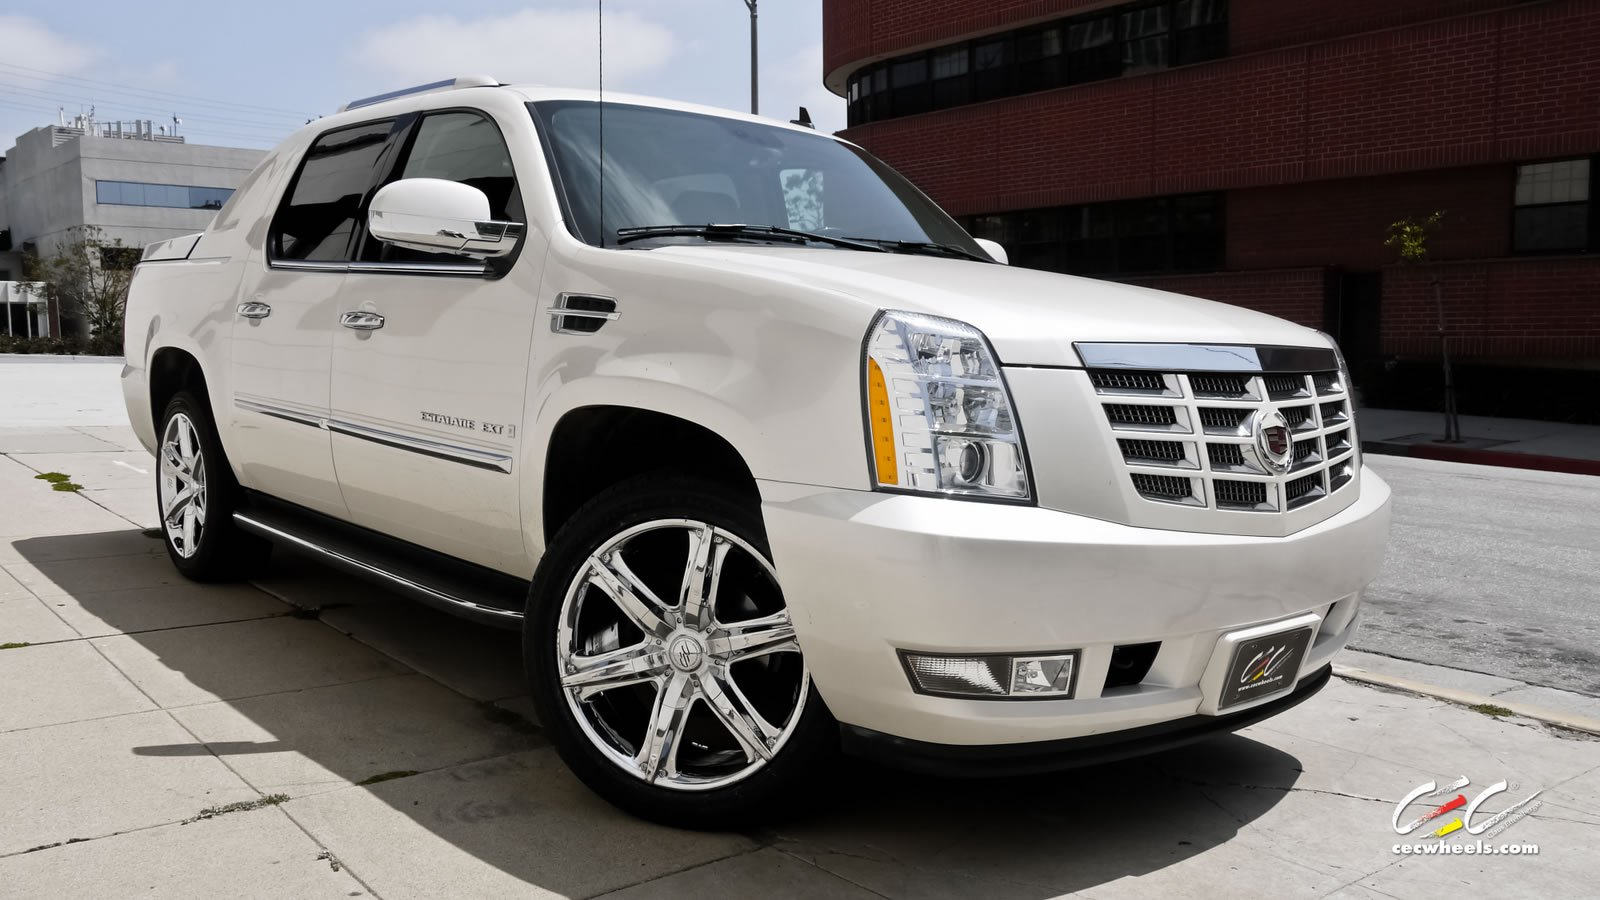 2015 cars cec tuning wheels cadillac escalade ext white suv wallpaper 1600x900 625448. Black Bedroom Furniture Sets. Home Design Ideas